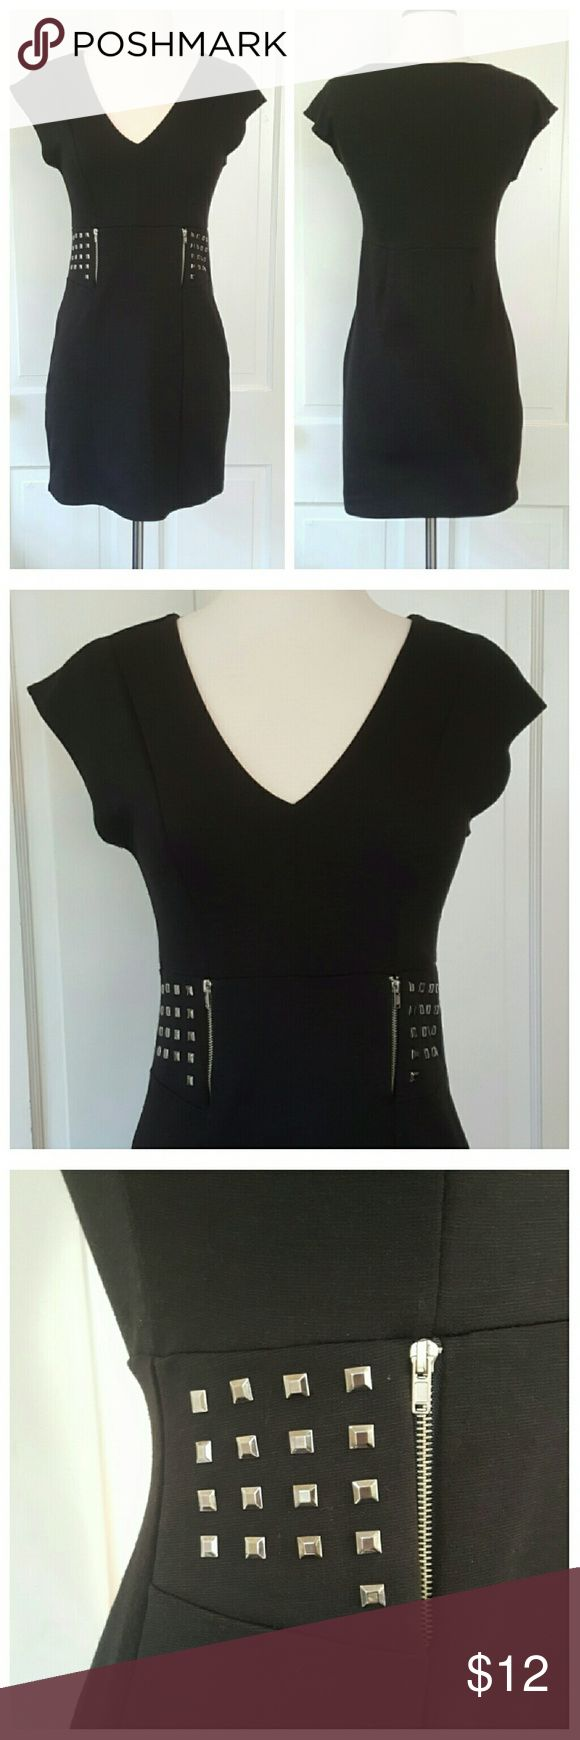 Bluheaven Black Stretch Dress Blueheaven black stretch dress with metallic medallion studs and zippers at side front. Bluheaven Dresses Mini